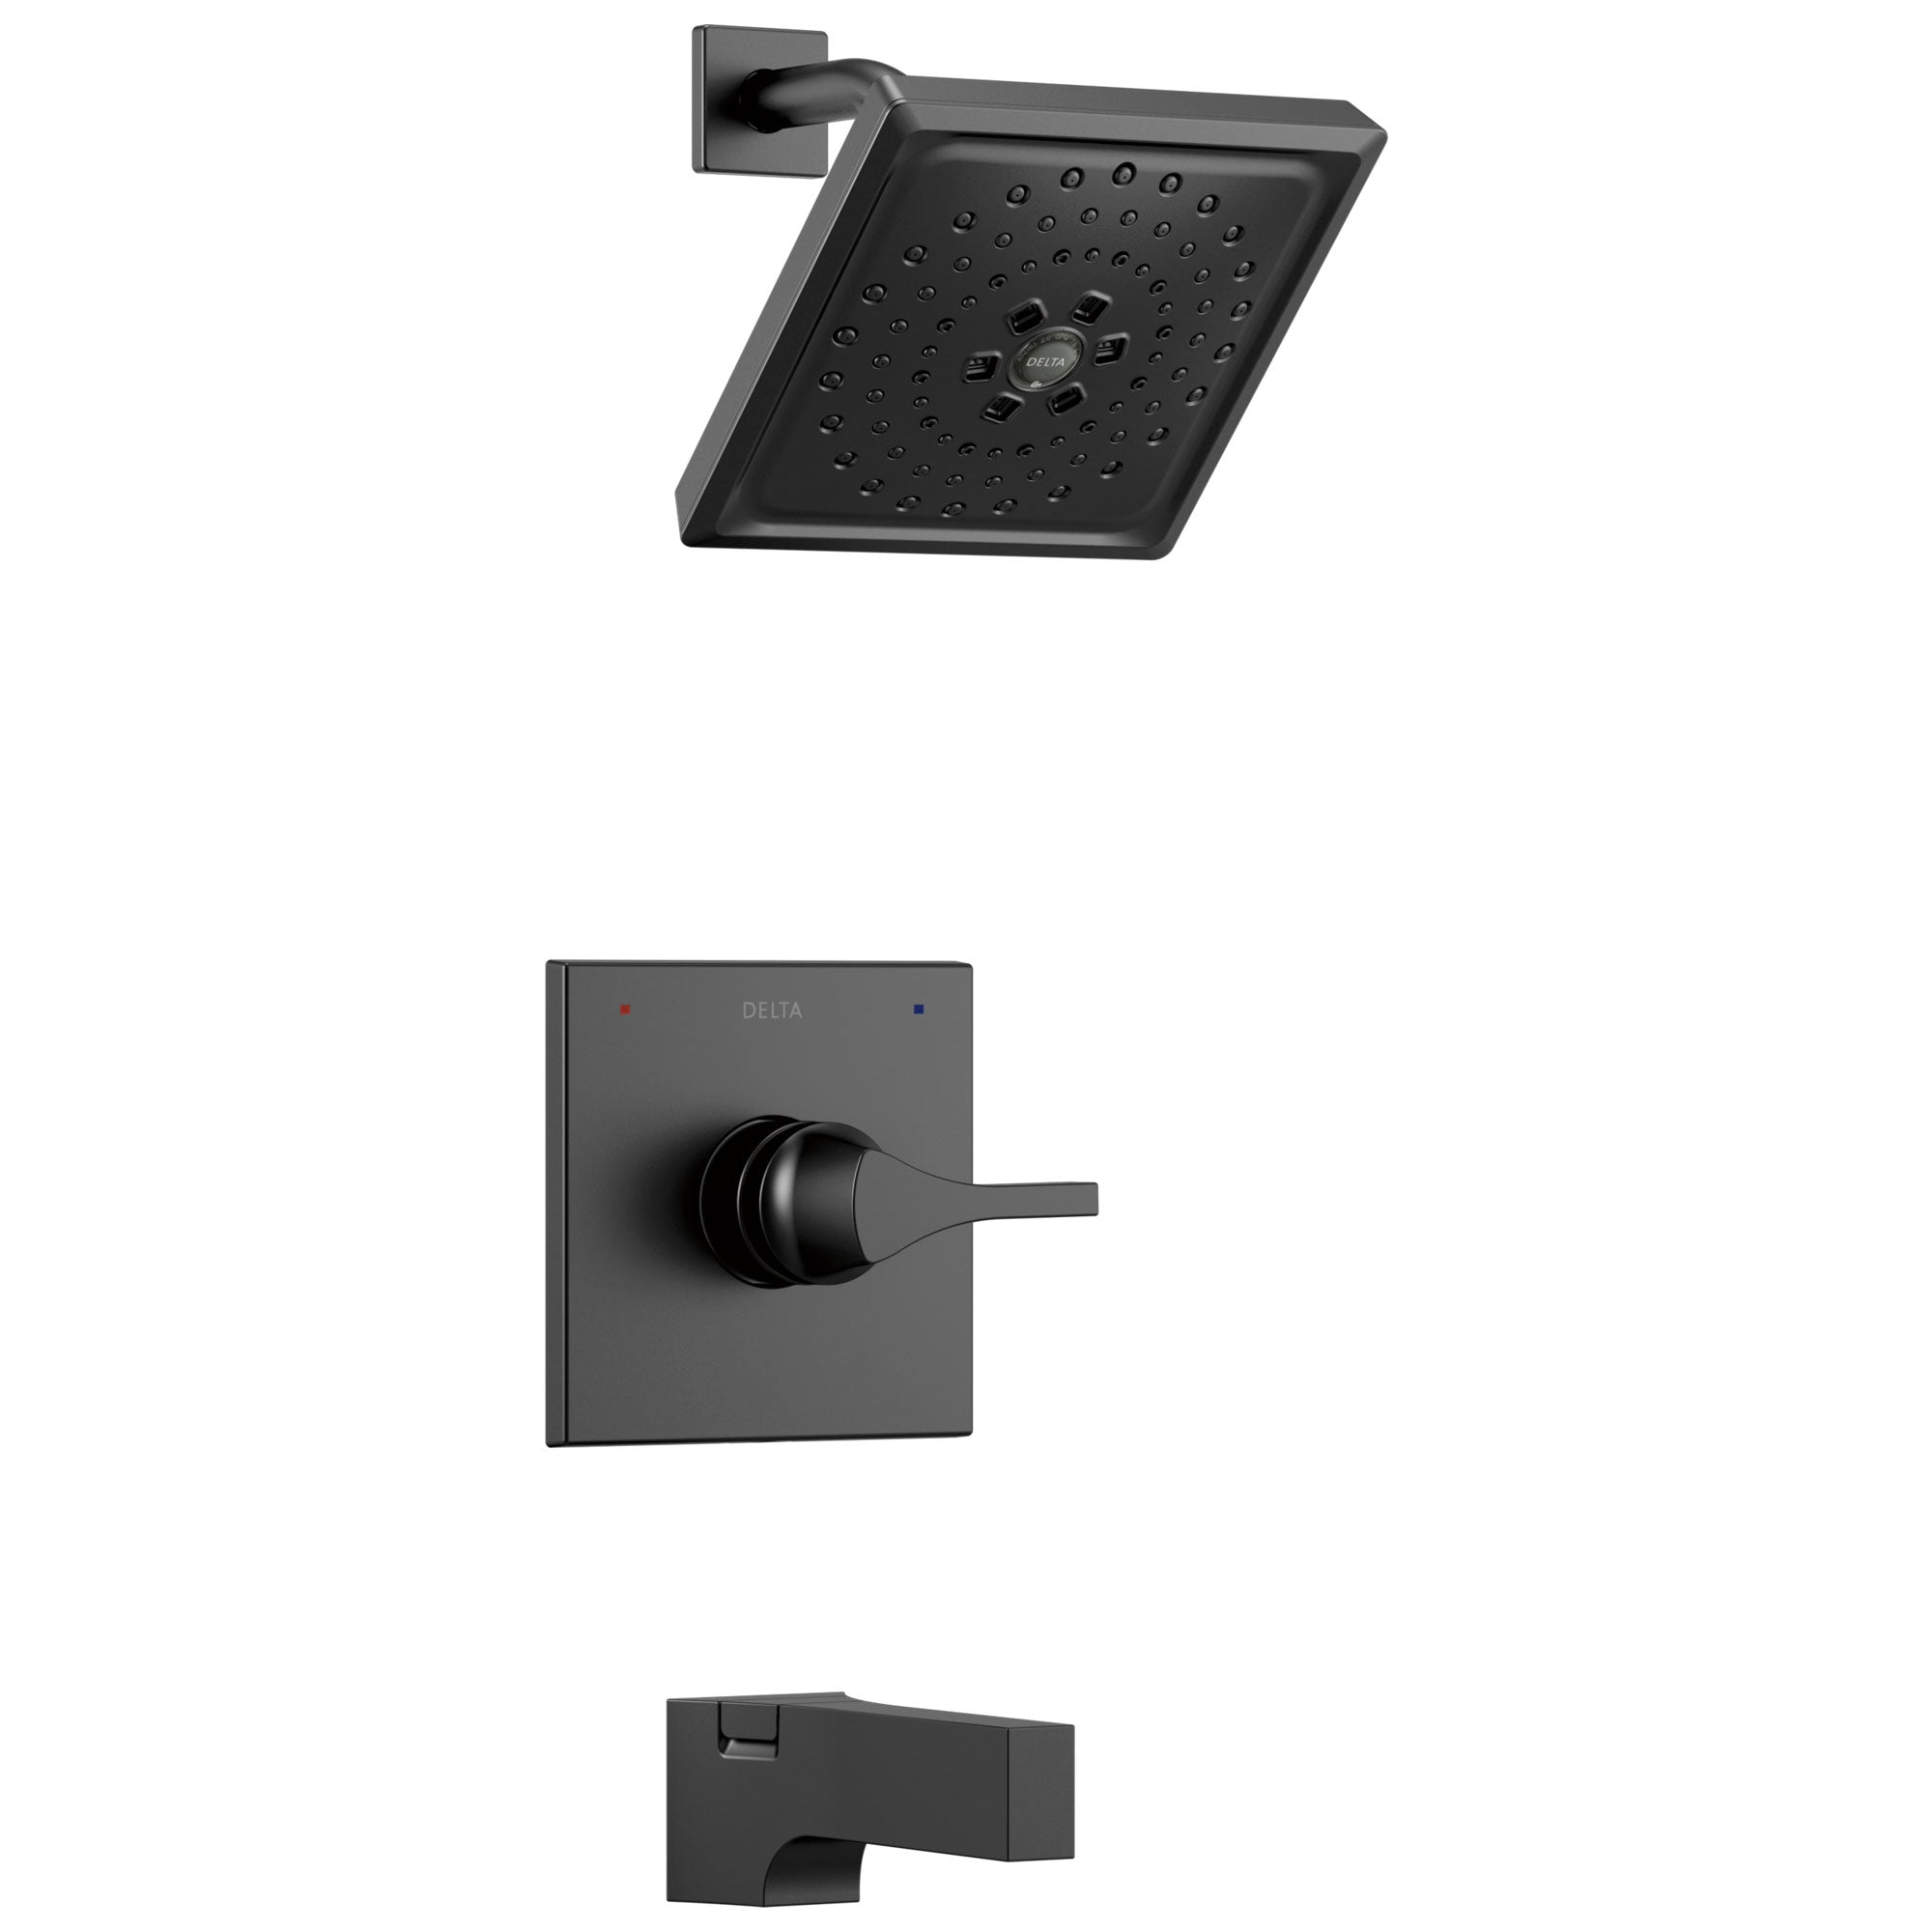 Delta Zura Matte Black Finish 14 Series H2Okinetic Tub and Shower Combination Faucet Includes Cartridge, Handle, and Valve with Stops D3637V